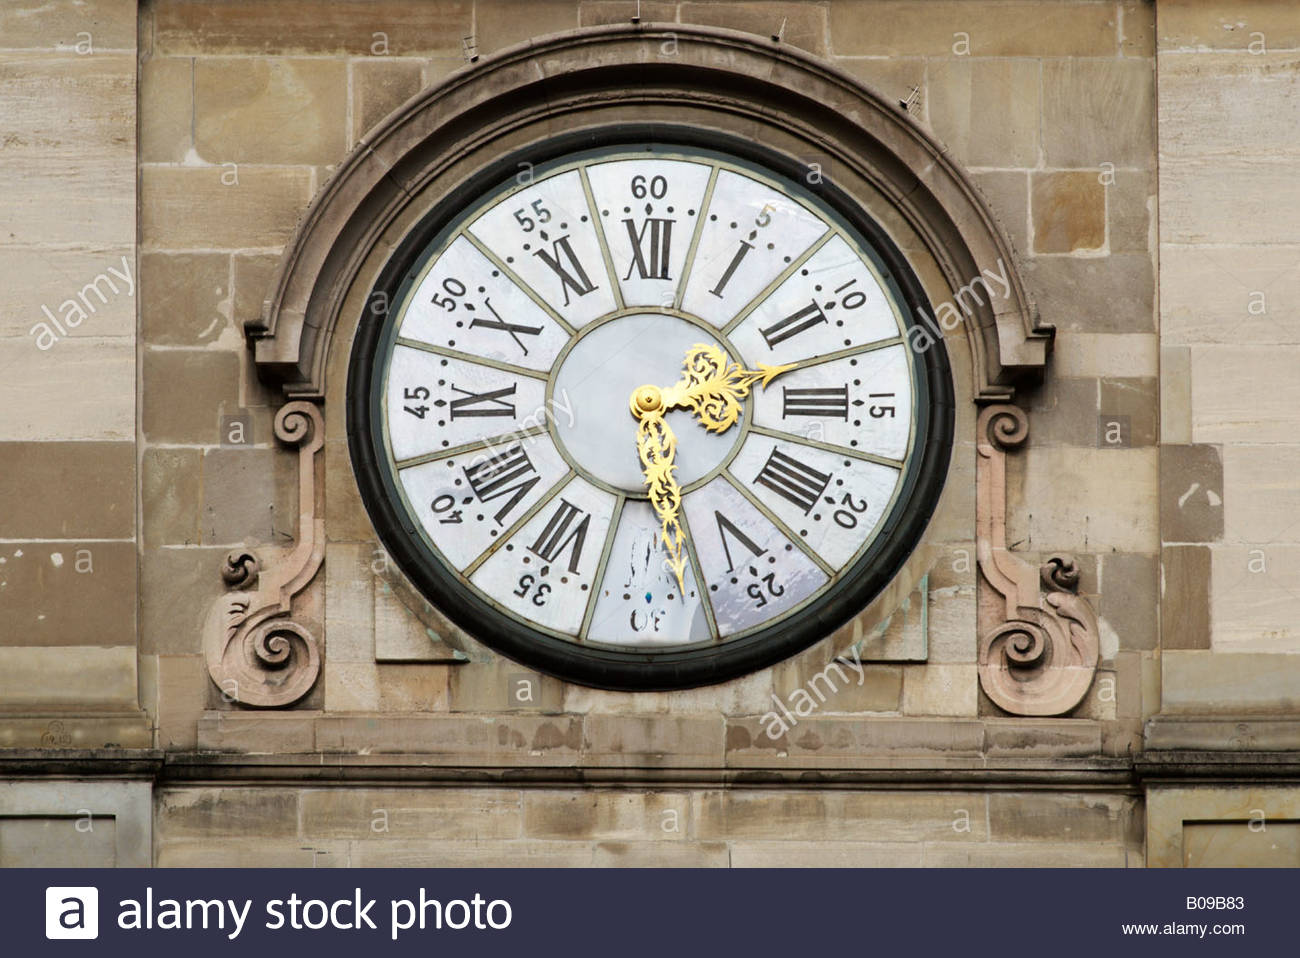 Clock on the outside wall of a building in Geneva, Switzerland - Stock Image